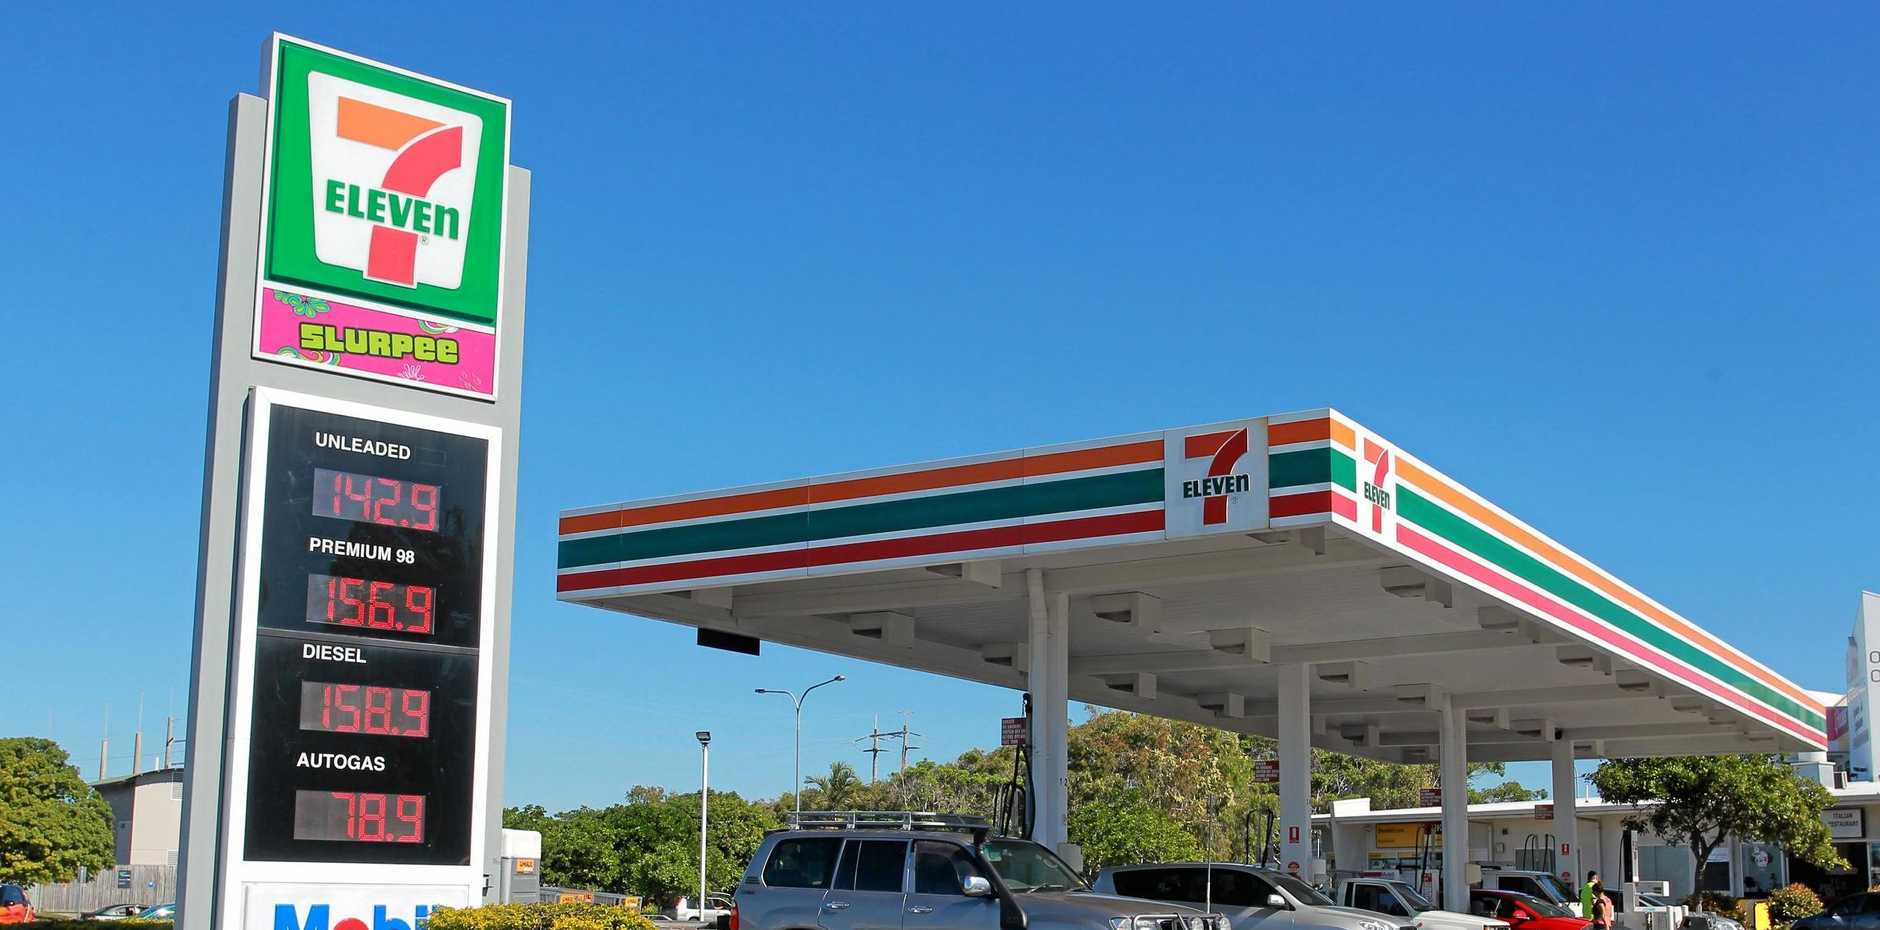 COMING: A new 7-Eleven at Woombye was subject of strong debate.